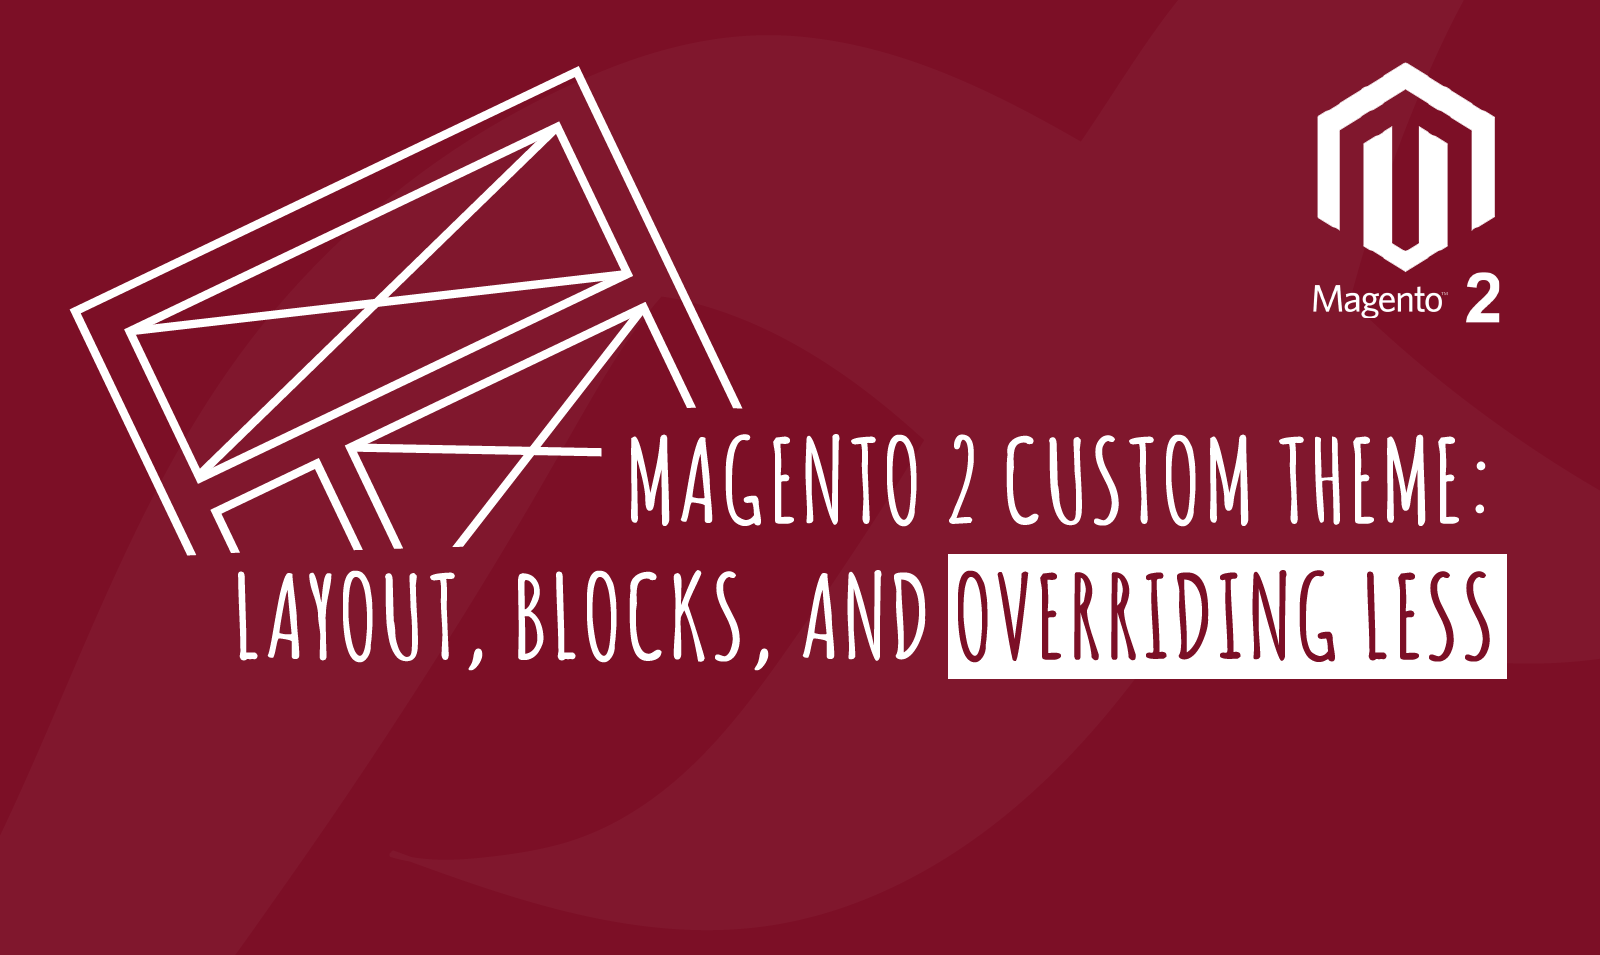 MAGENTO 2 CUSTOM THEME: LAYOUT, BLOCKS, AND OVERRIDING LESS